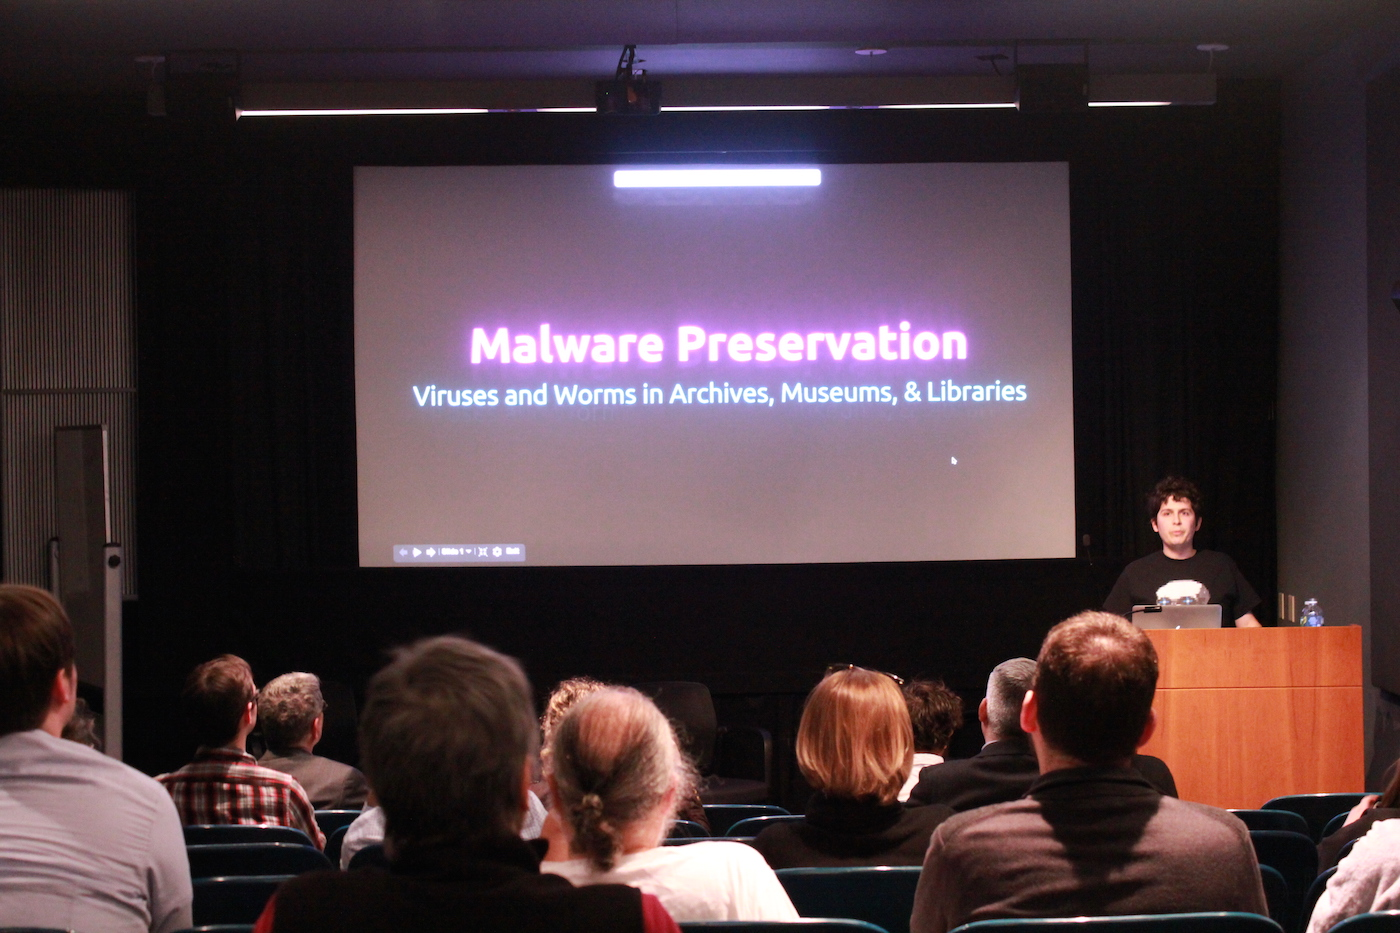 Jonathan Farbowitz - Preserving Malware in Archives, Museums, and Libraries